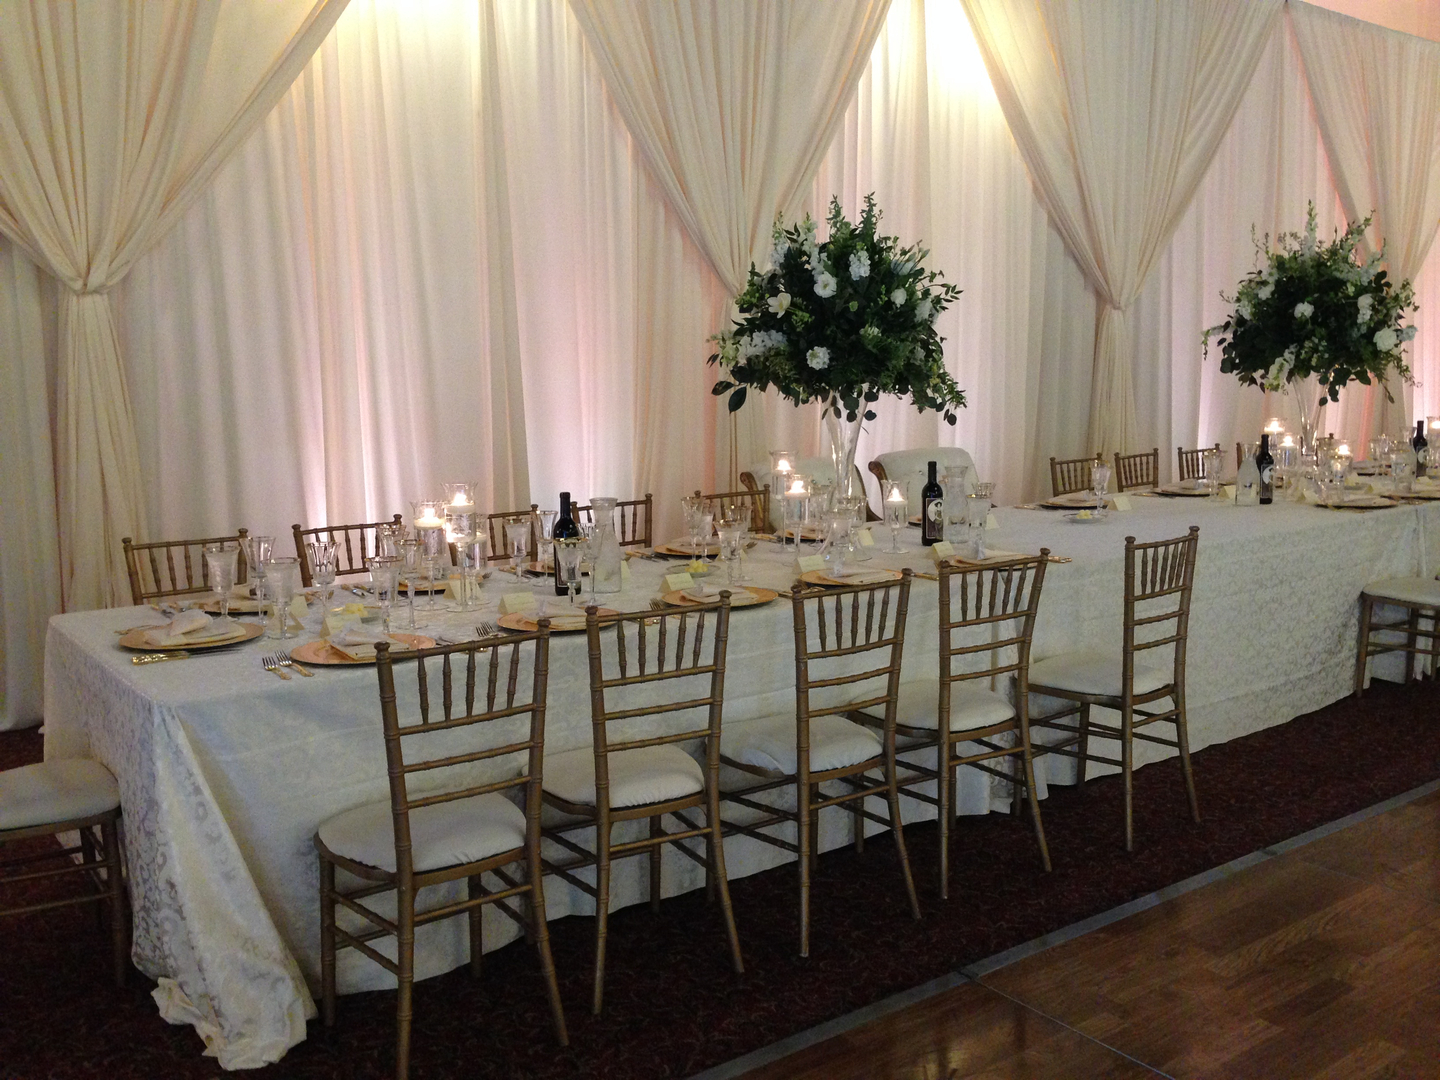 images event toronto draping designs from canopies drapes services eventure ceiling